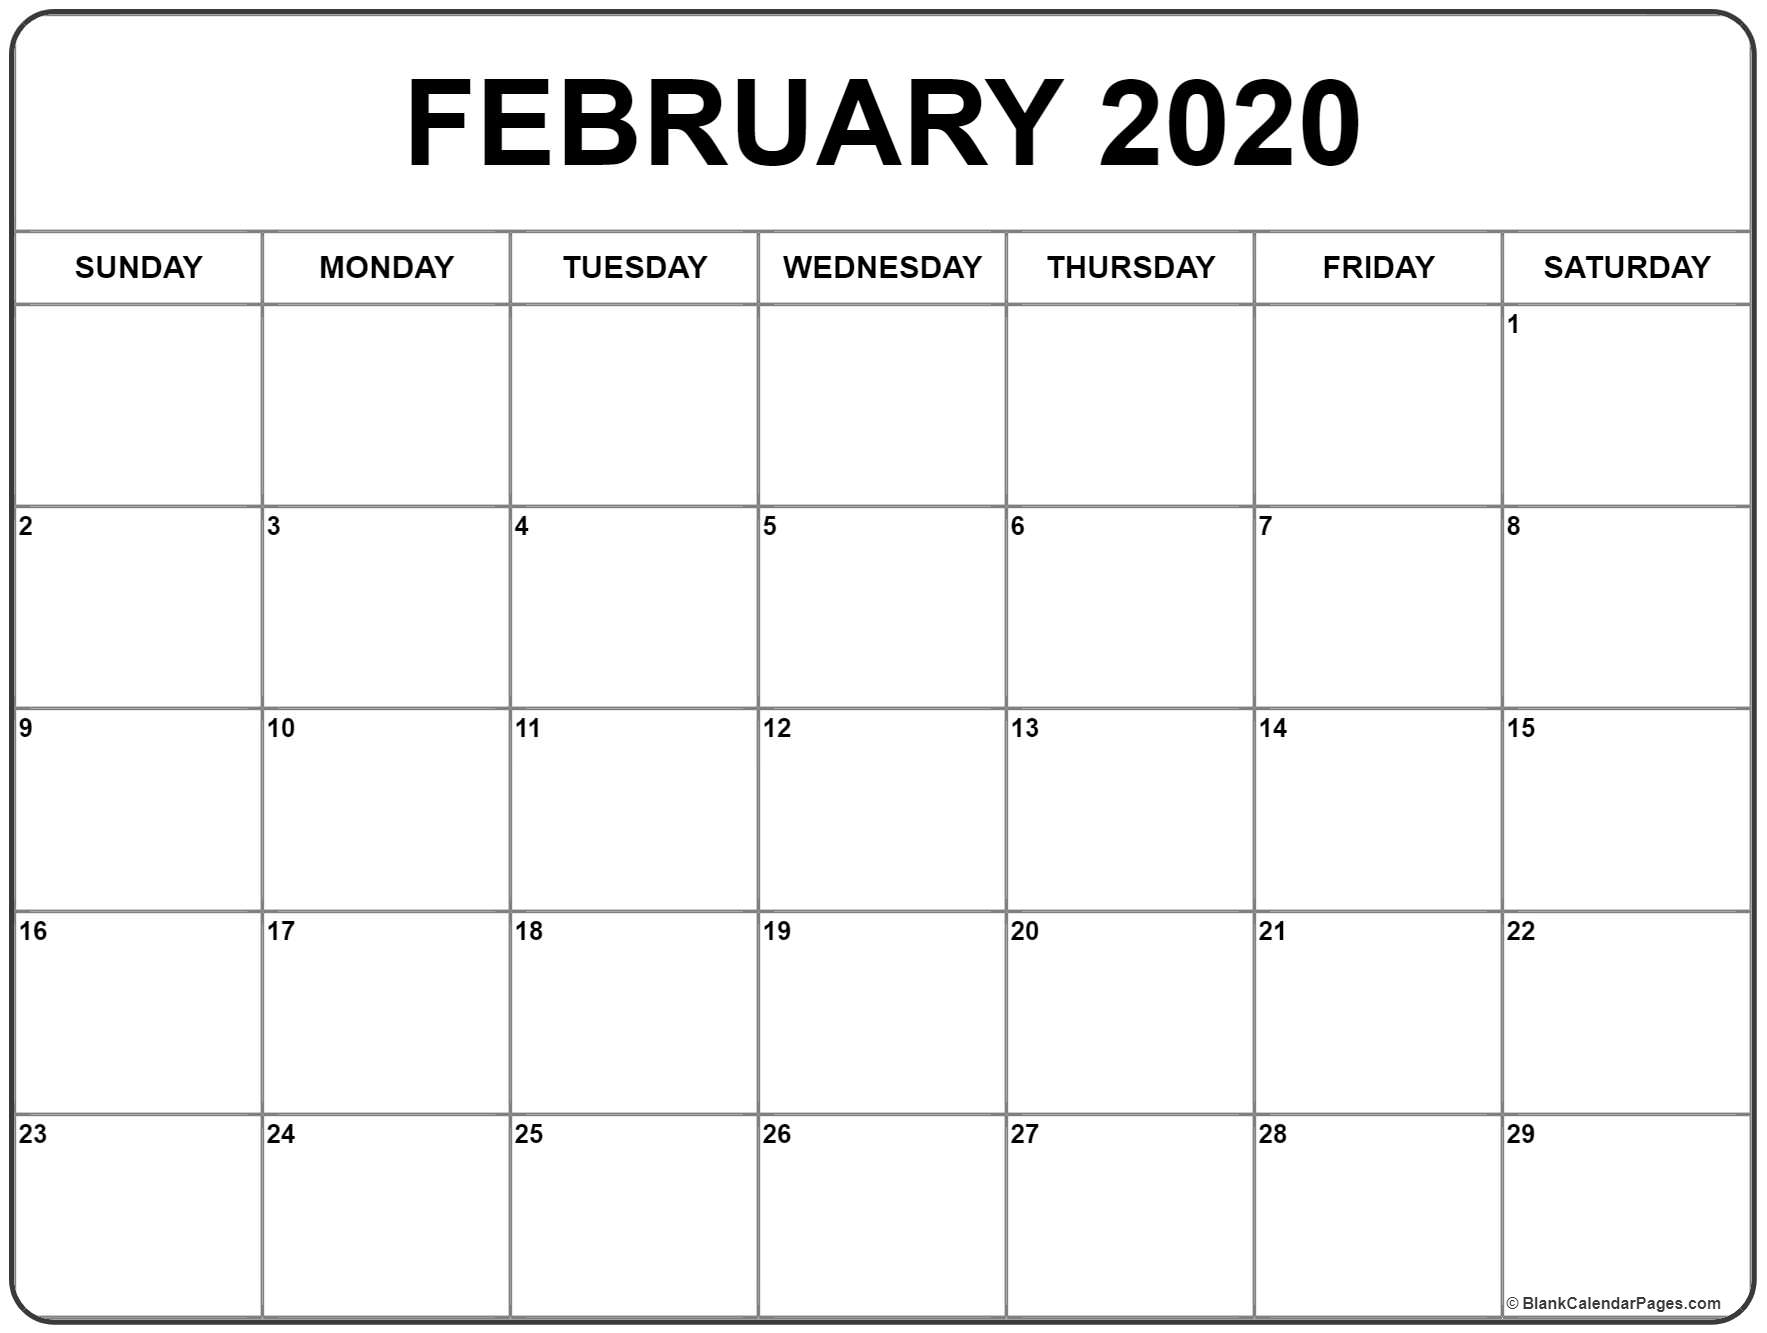 February 2020 Calendar | Free Printable Monthly Calendars with Large Printable Calendar 2020